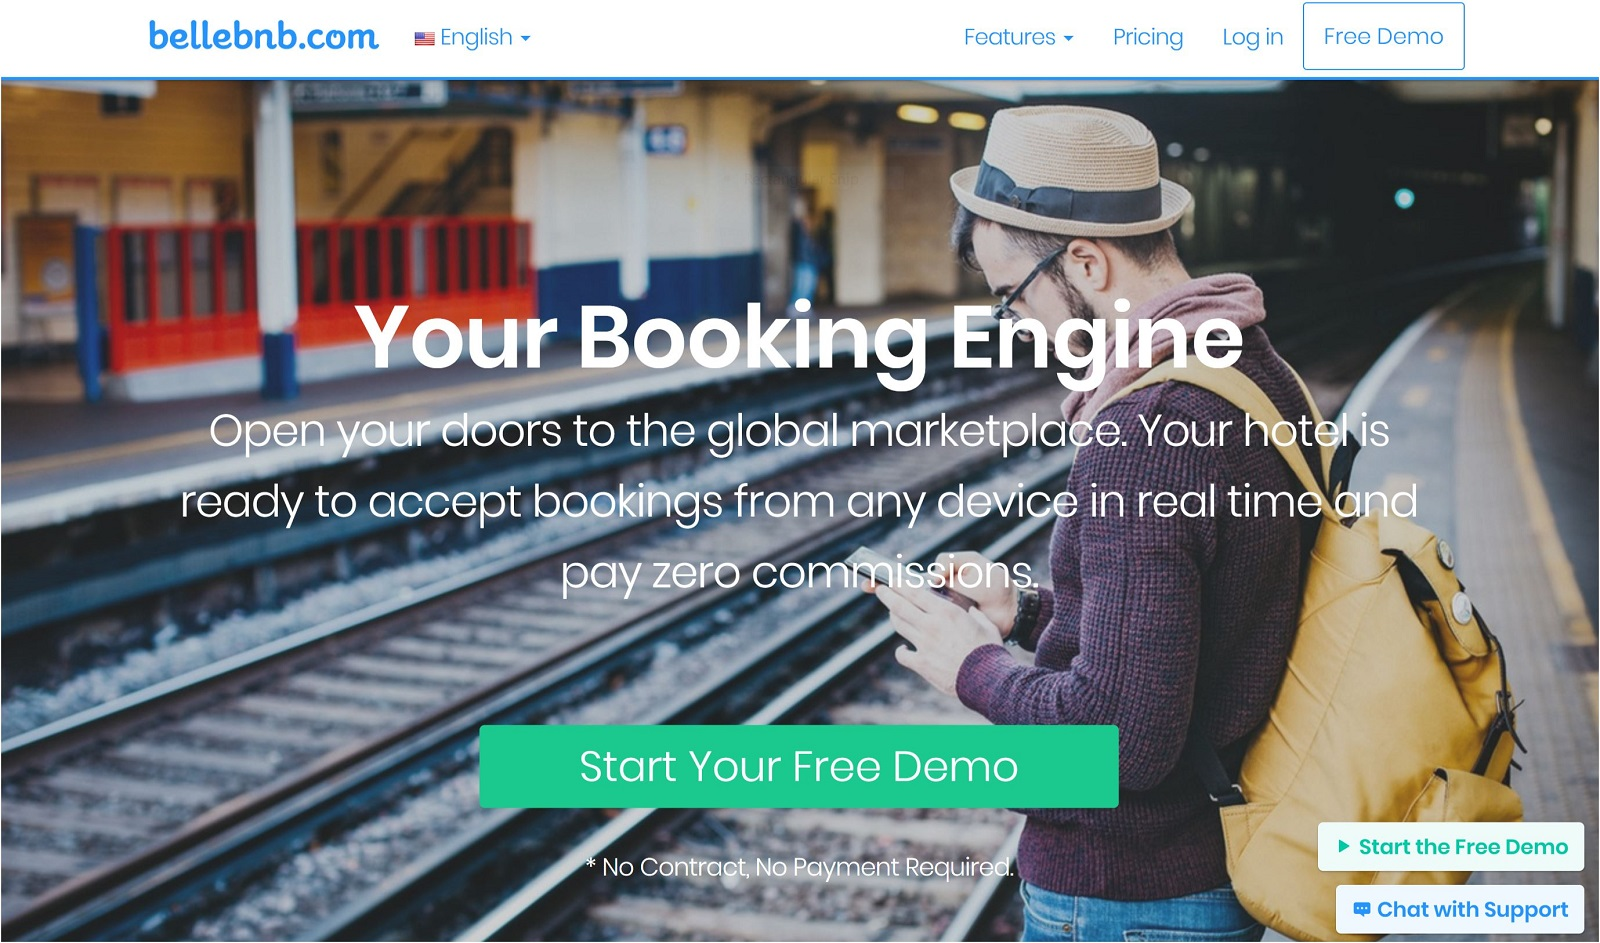 Bellebnb.com Hotel Booking Engine Commission Free!